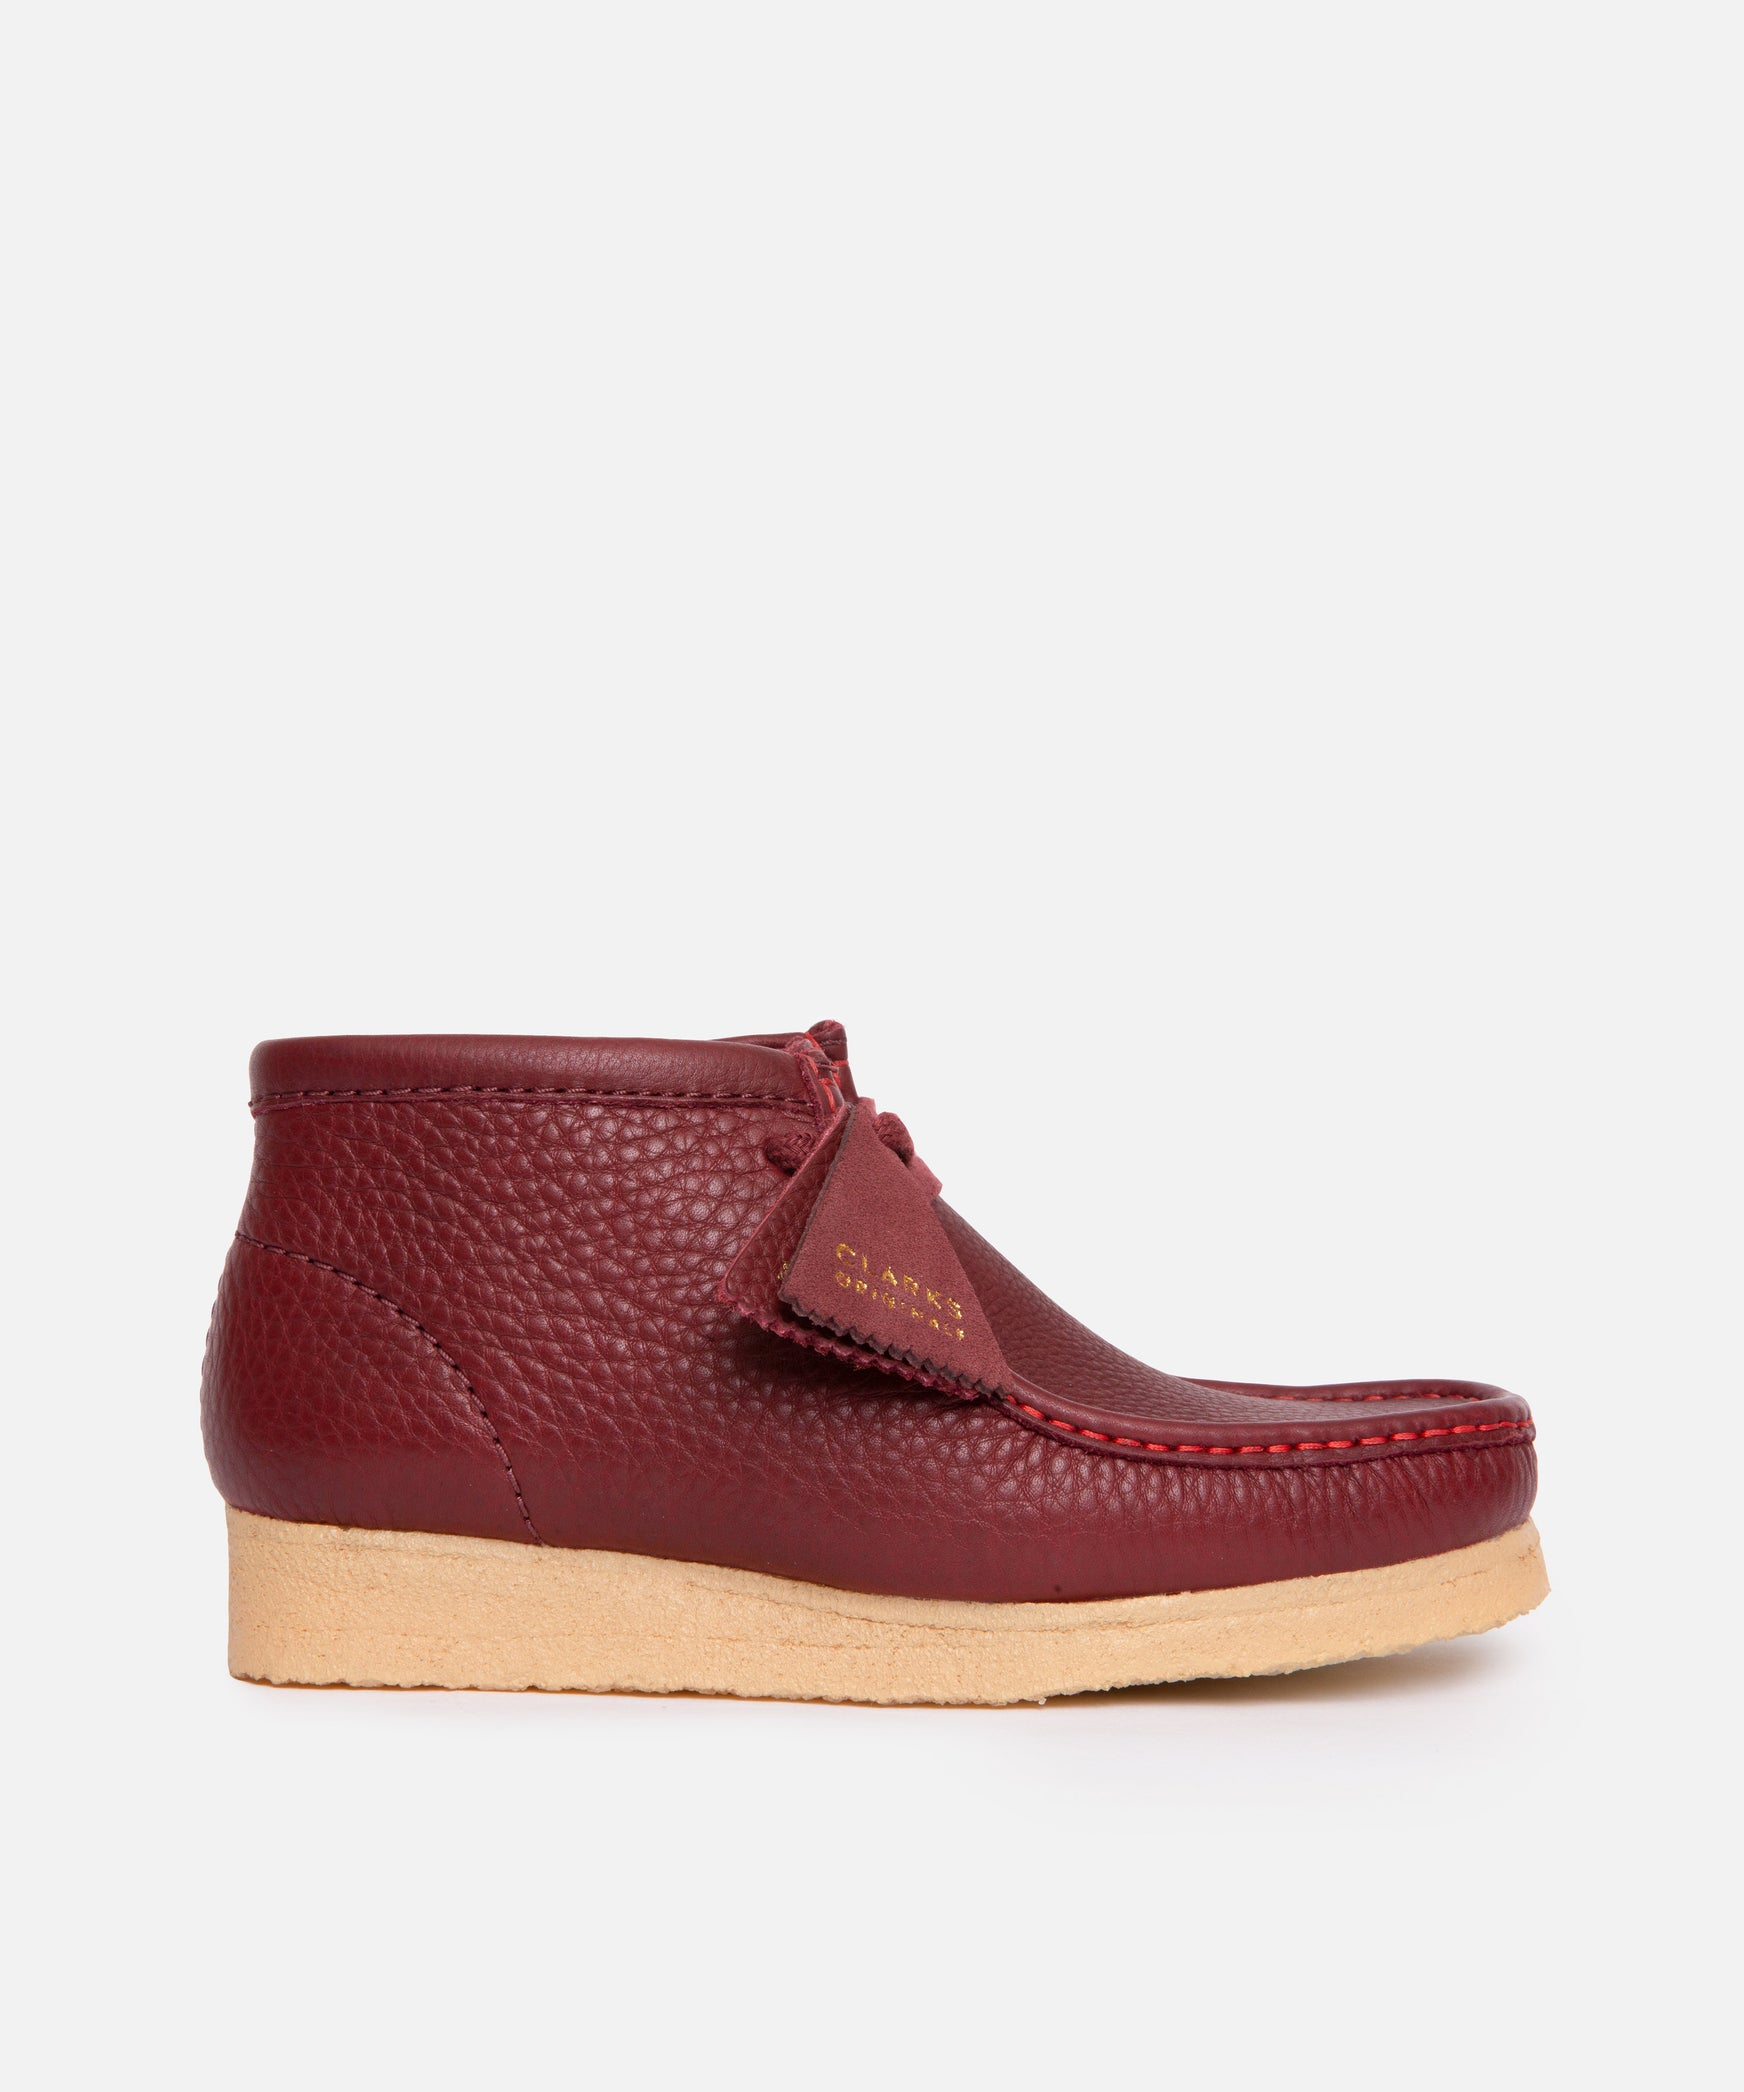 WMNS Clarks x Sporty & Rich Wallabee Boot Leather (Burgundy Leather)